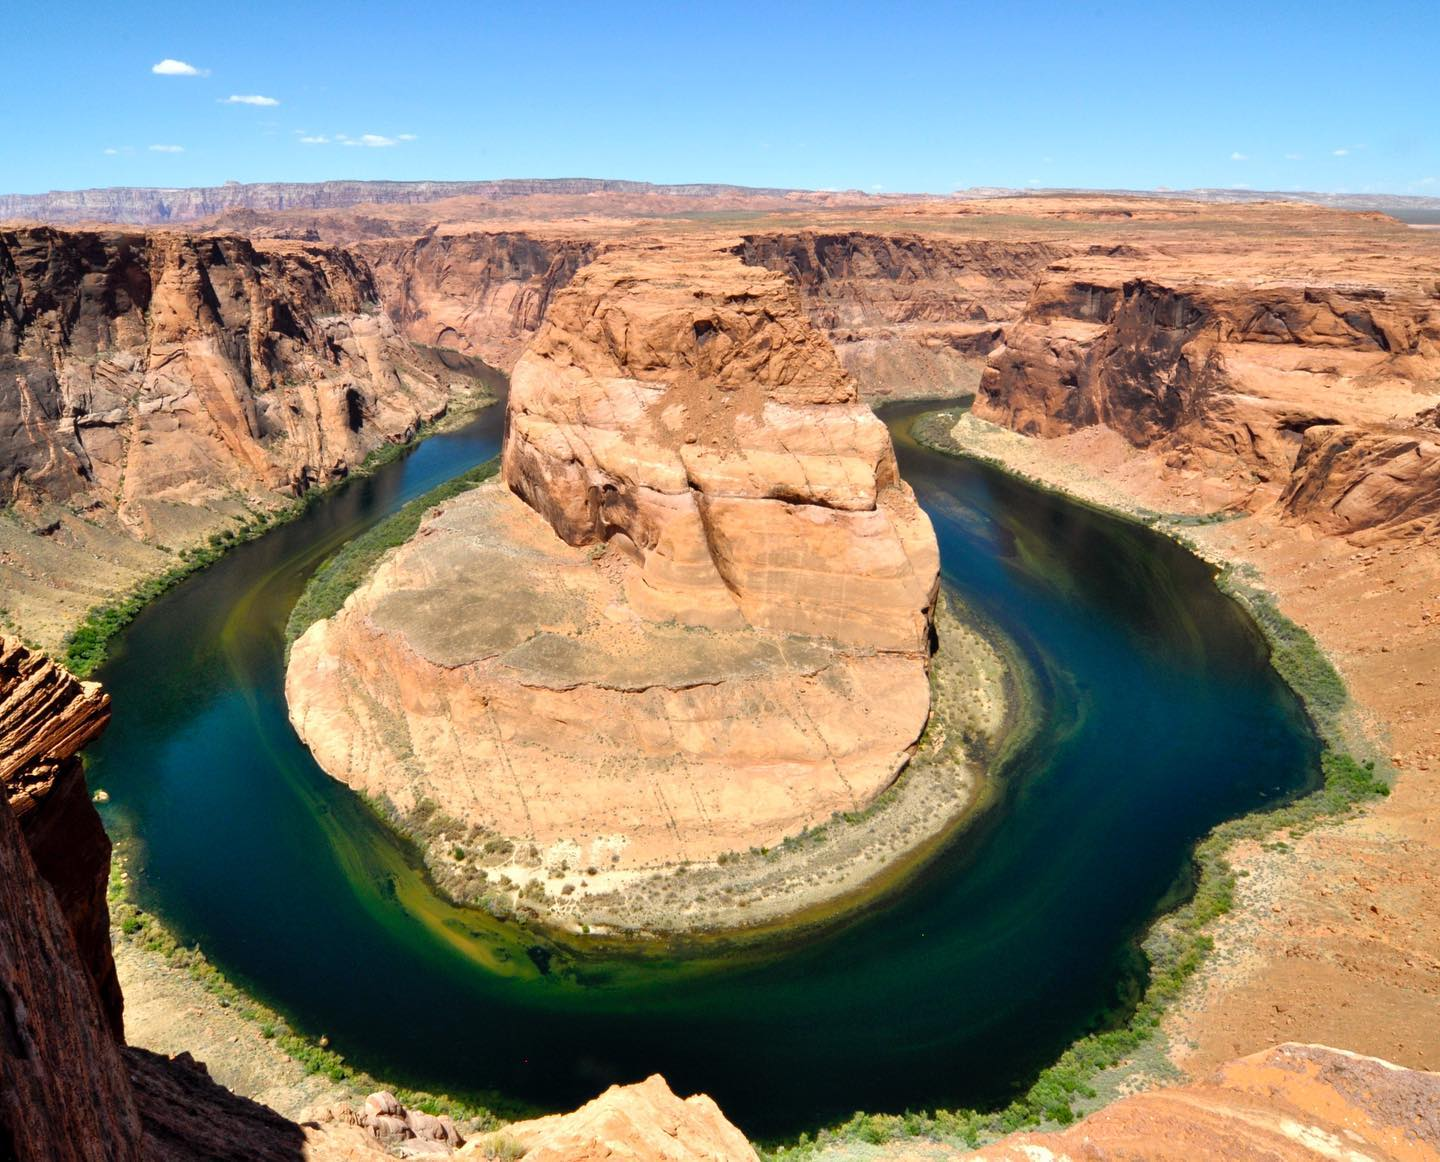 Horseshoe Bend near Page/Arizona You have not been there yet? Put it on your bucket list. It's a short/easy hike from the parking lot to this unique place. Be there early, it might be crowded during the day. #roadtripusa🇺🇸 #roadtrip #roadtrippin #arizona #ontheroad #pagearizona #horseshoebend #travelphotography #travelblogger #landscapephotography #desertvibes #canyon #beautifuldestinations #unitedstates #scenicview #coloradoriver #instatravel